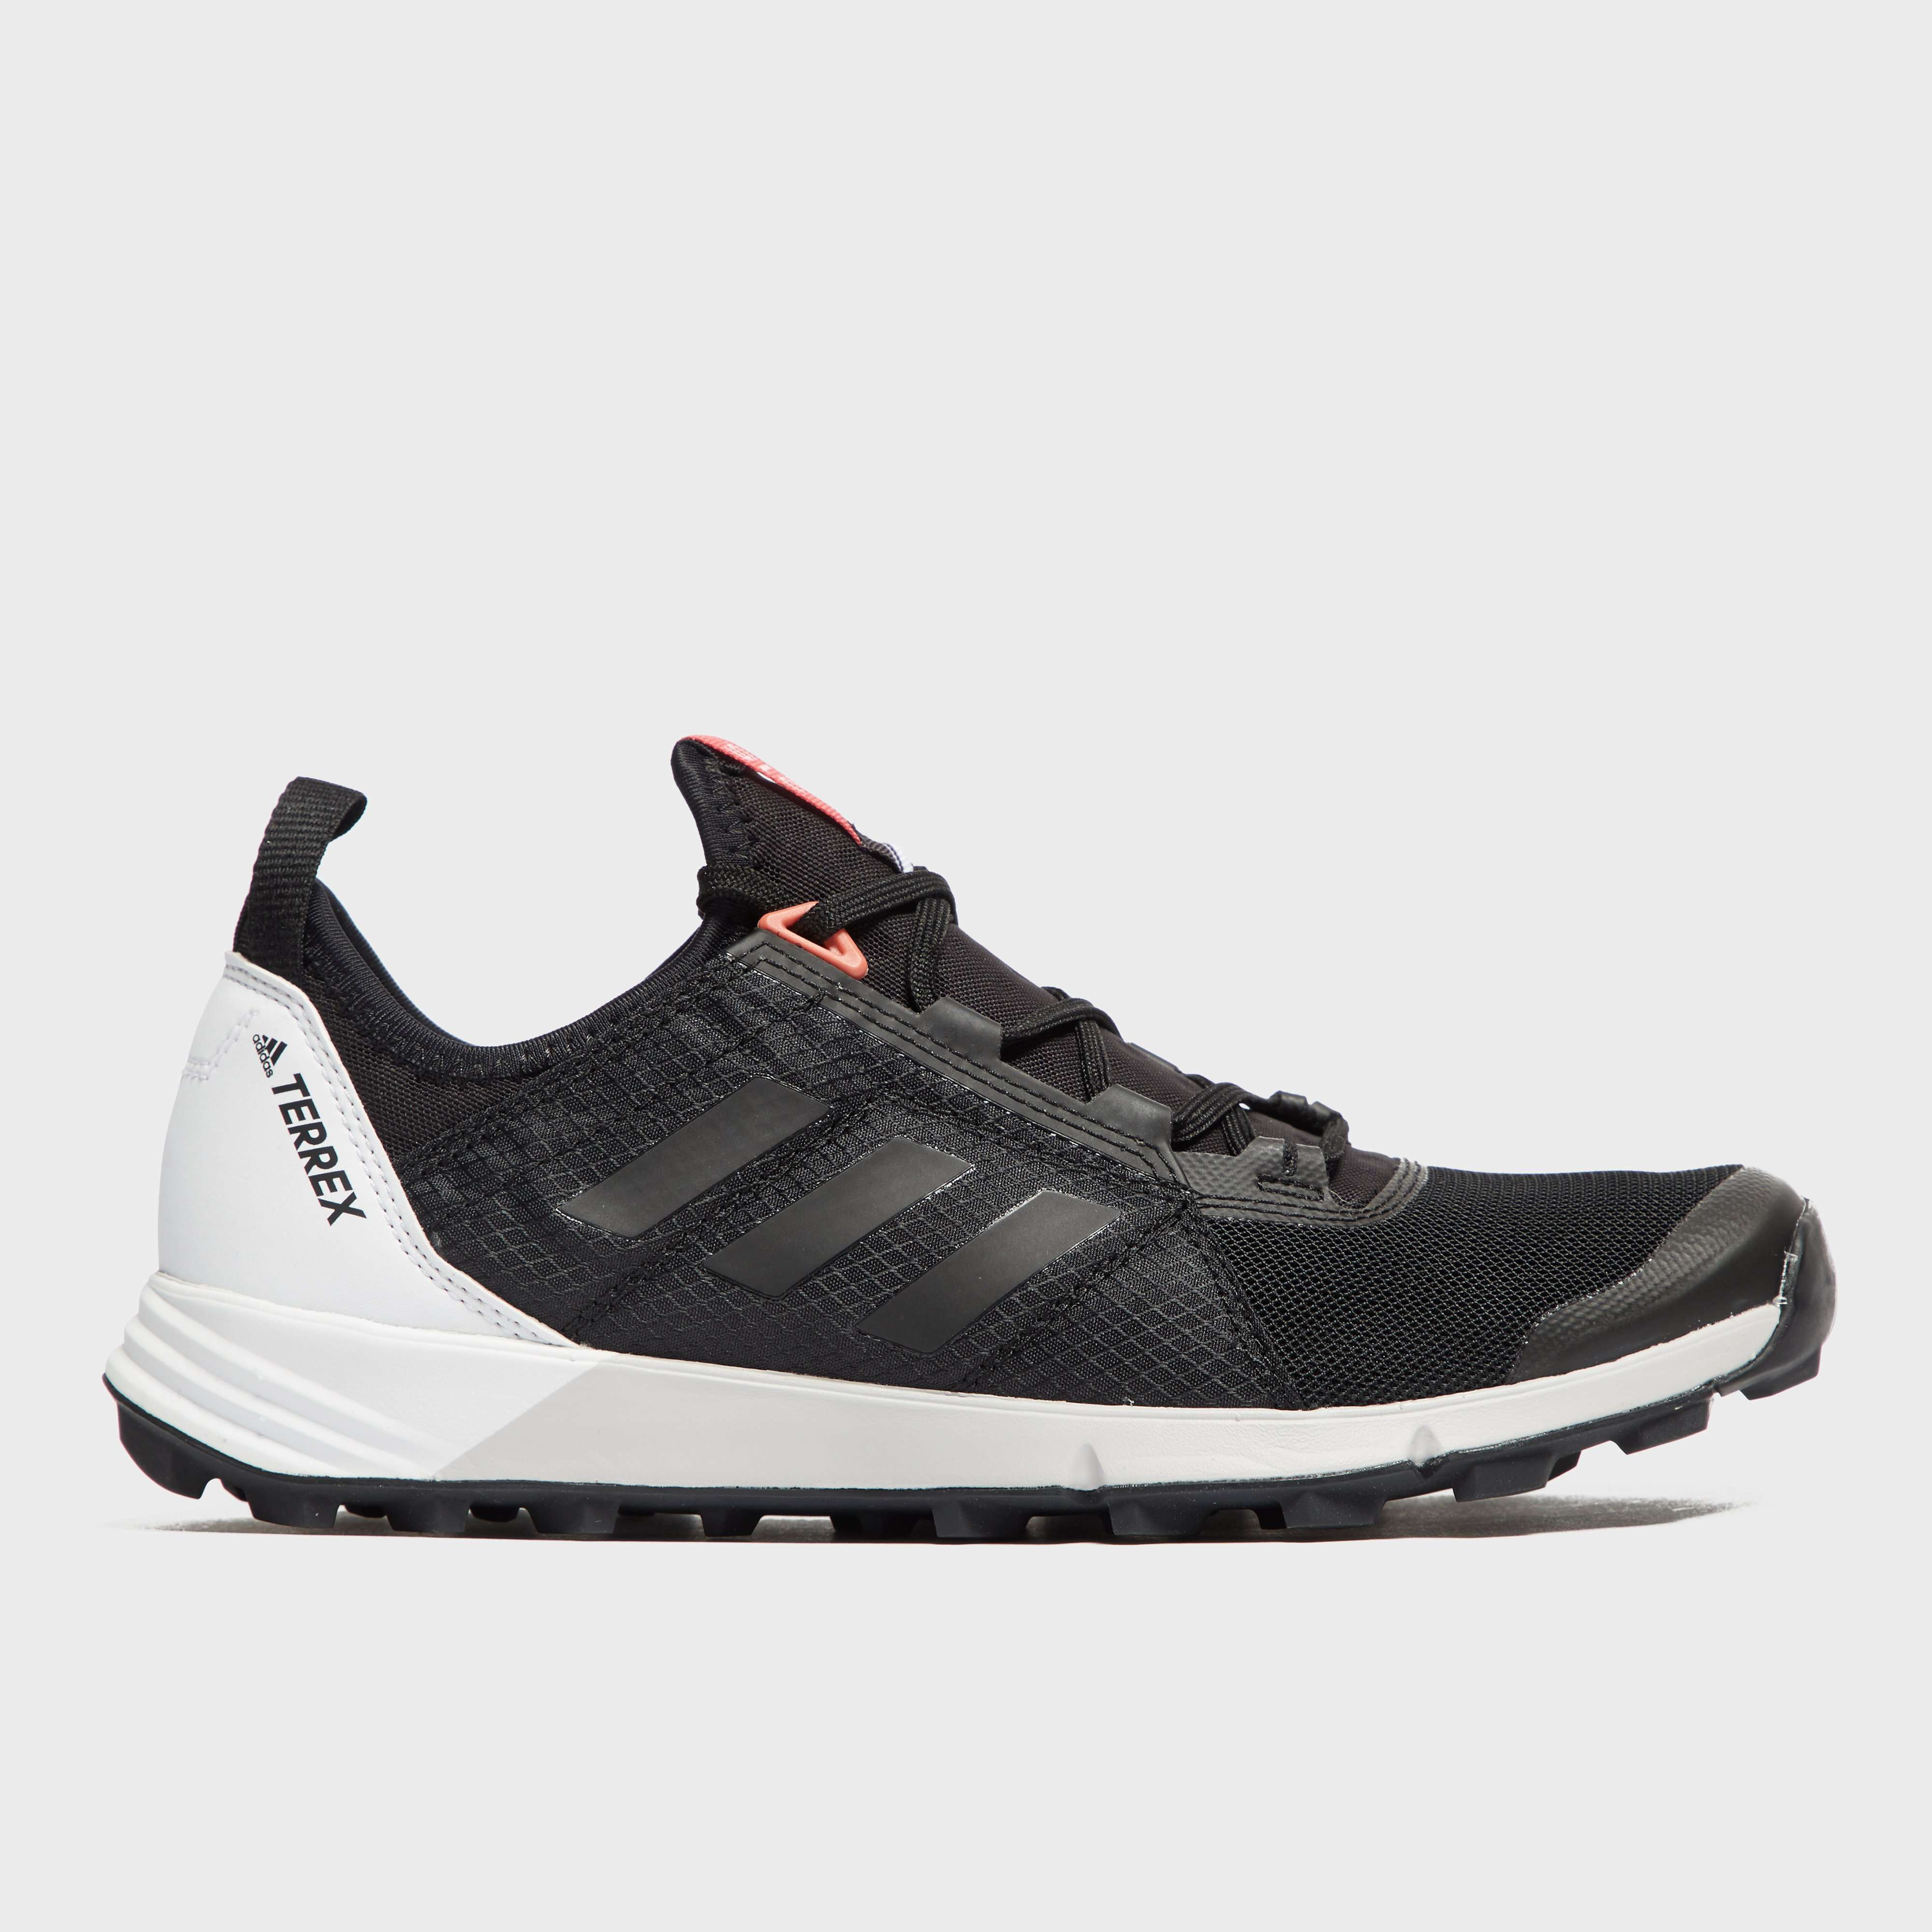 ADIDAS Women's Terrex Agravic Speed Running Shoes